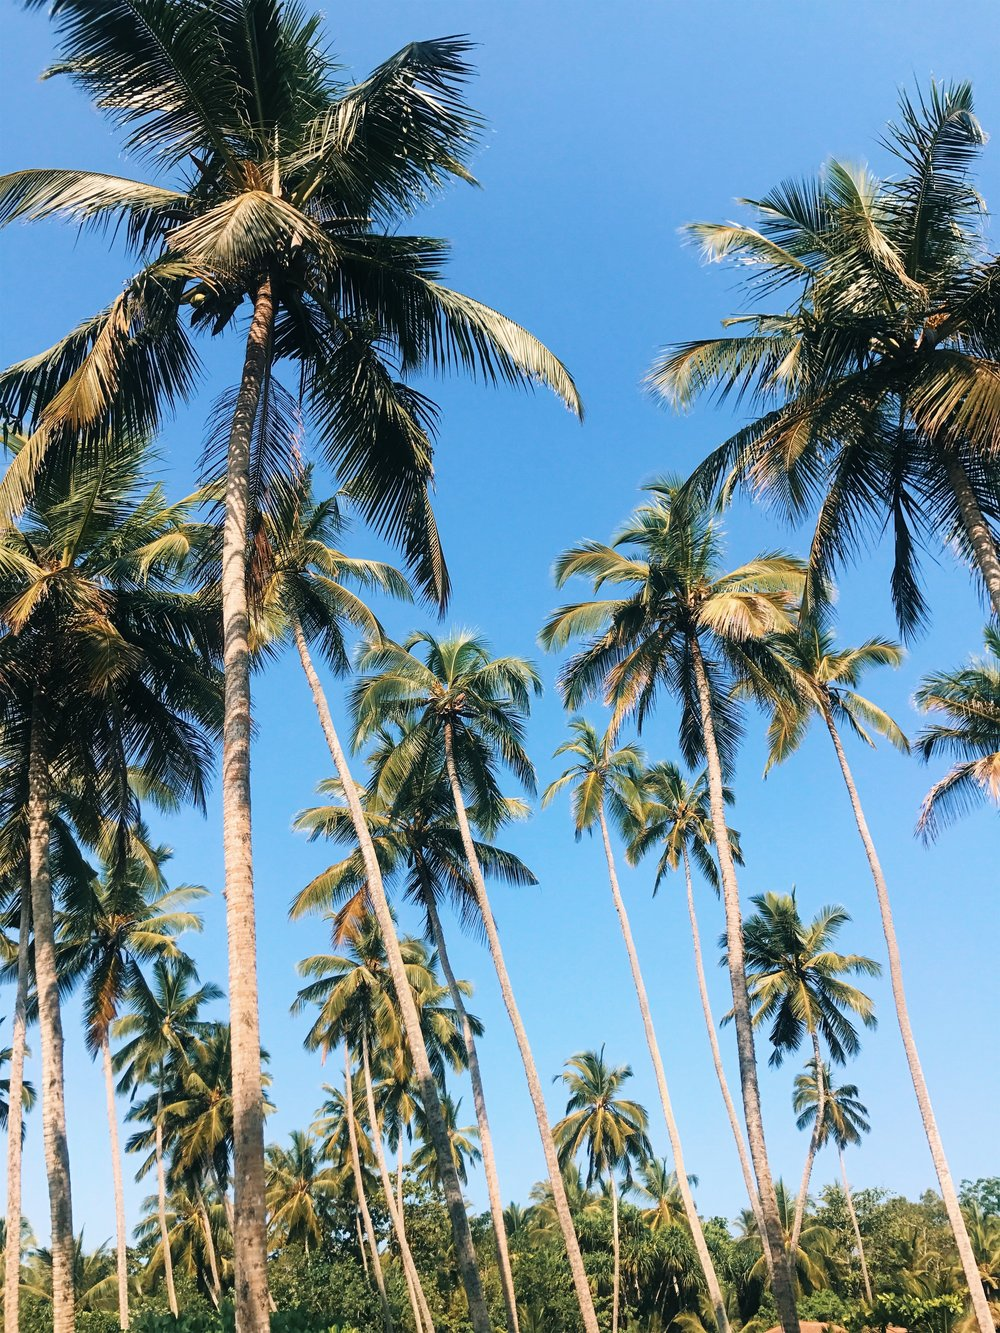 Tangalle Palm Trees